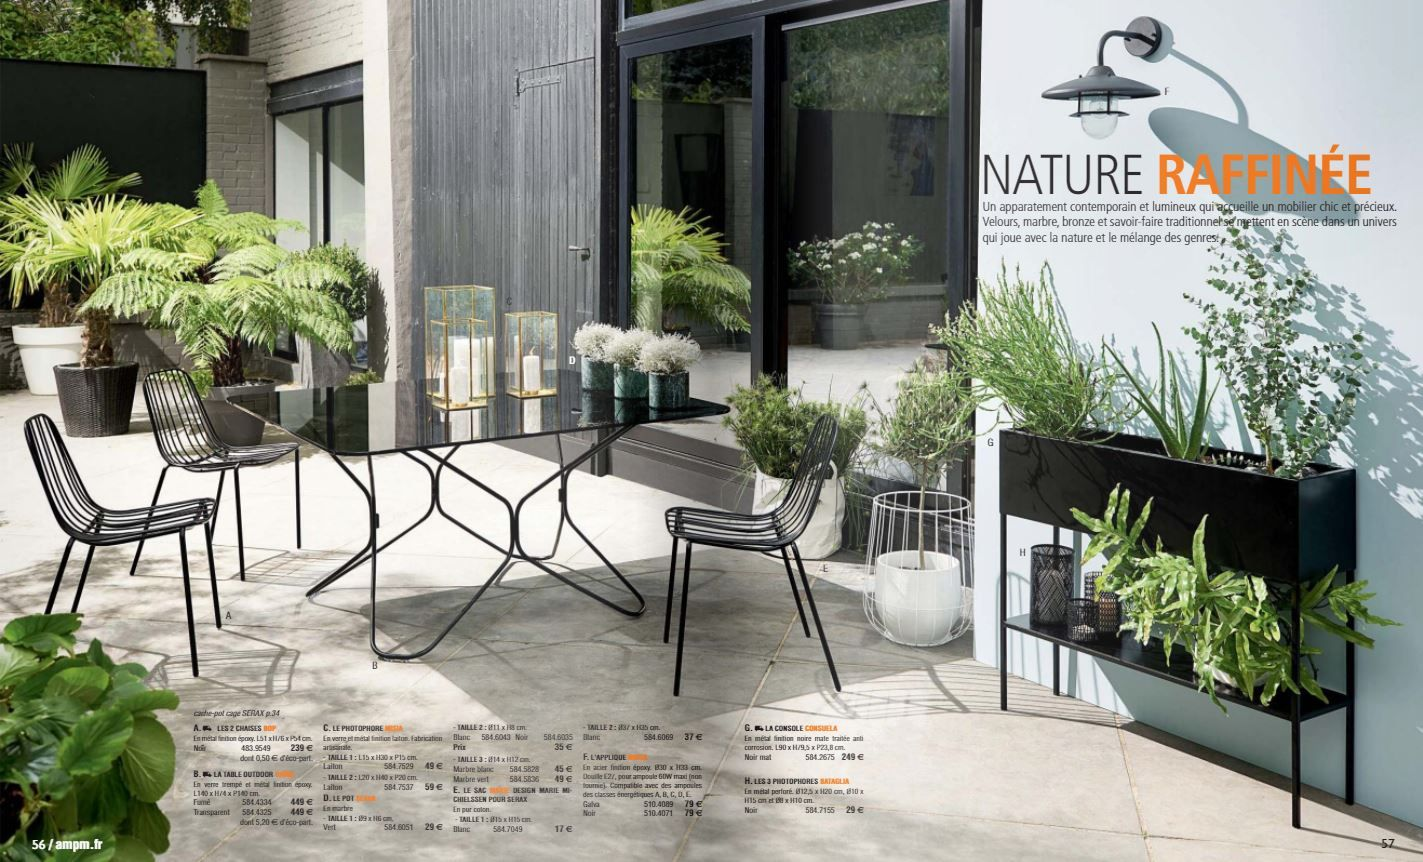 Collection Nature Raffinee Du Catalogue Ampm Printemps Ete 2018 Table D Exterieur En Metal Noir Et Verre Fume Amenagement Terrasse Terrasse Idees De Patio